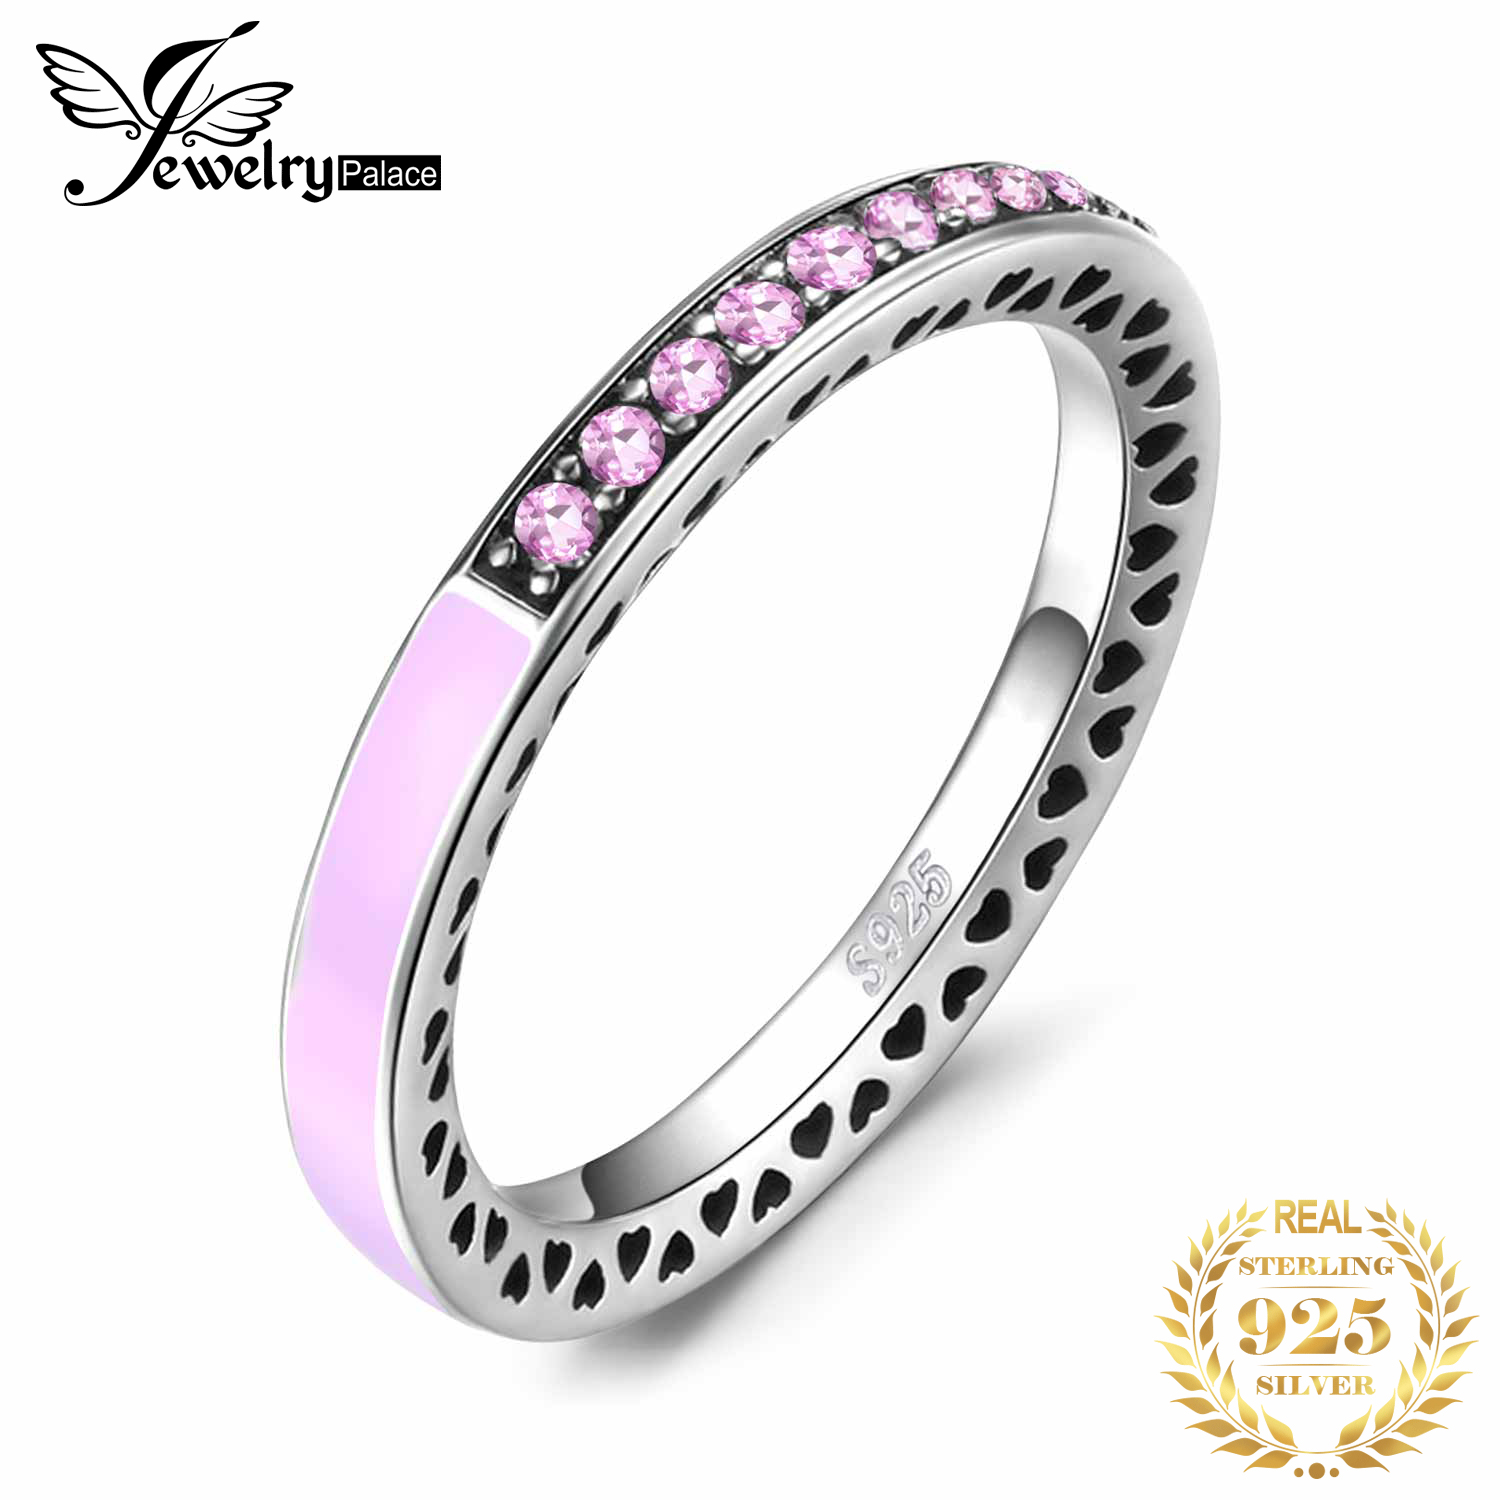 Jewelrypalace Pink Enamel Channel Set Cubic Zirconia Stackable Wedding Ring 925 Sterling Silver For Women Steel Jewelry